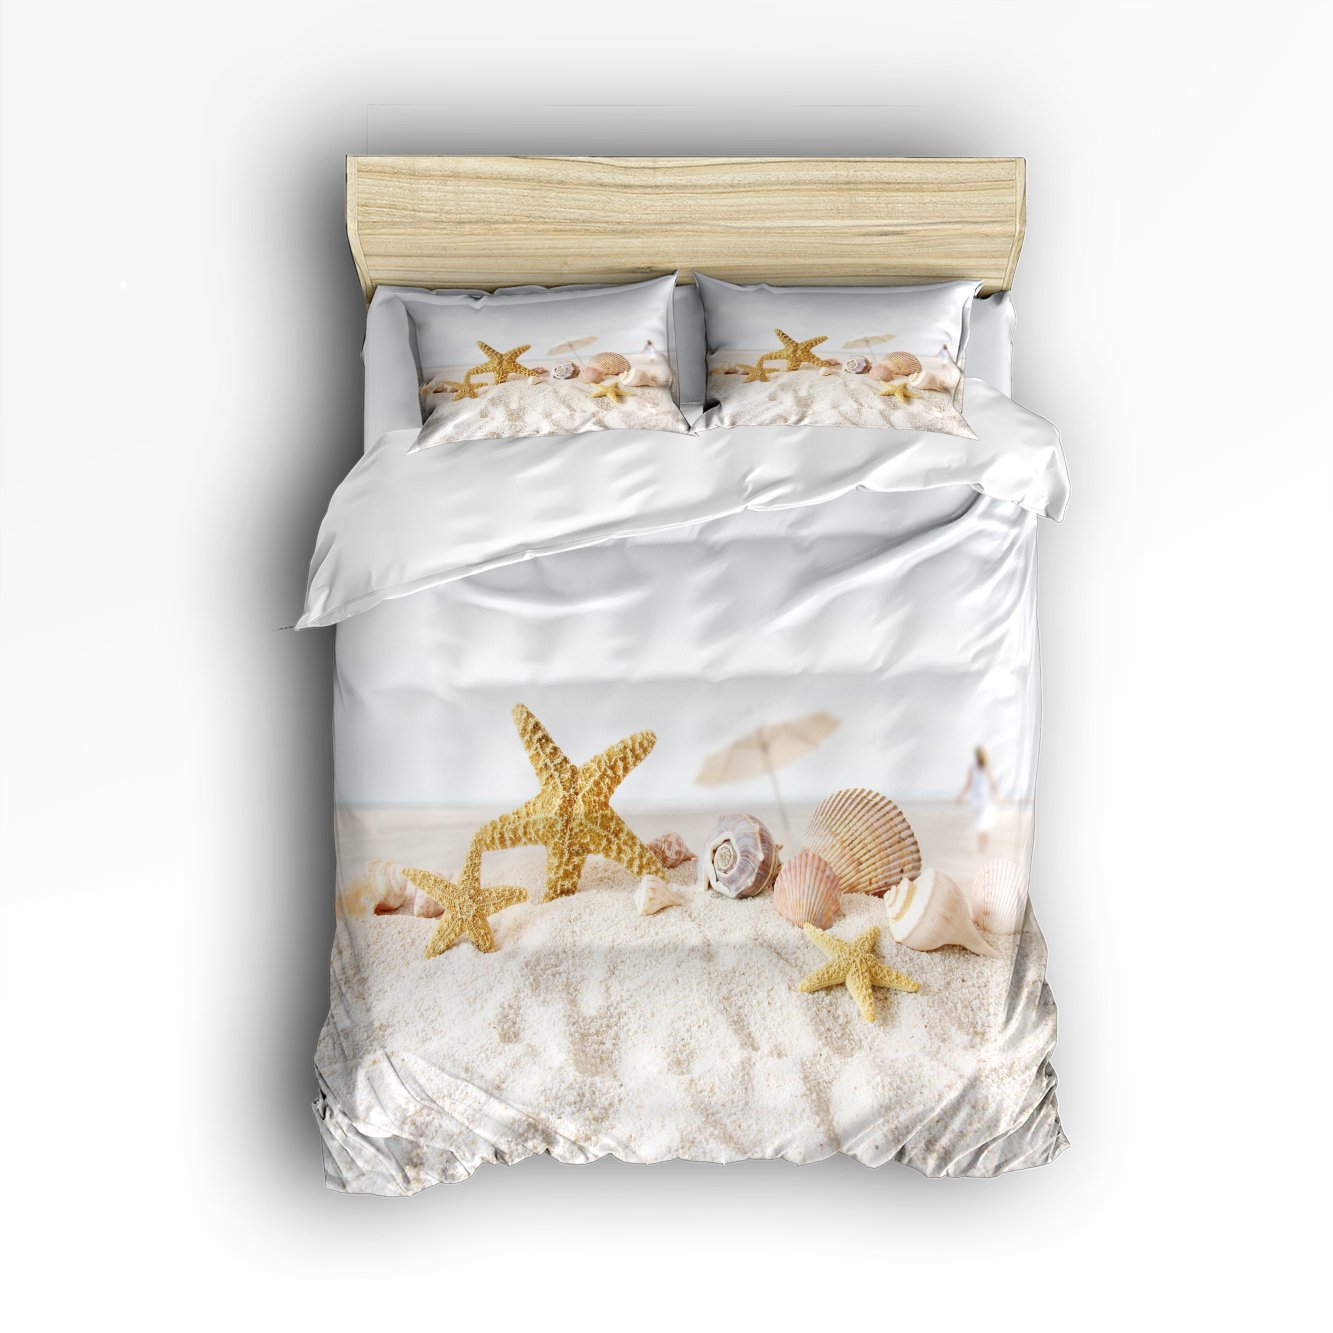 Beauty Decor Bedding 4 Piece bed Set Comfortable Soft Brushed Cotton, Star fish sea shell beach 4 Piece Bed Sheet Set Duvet Cover Flat Sheet and 2 Pillow Cases